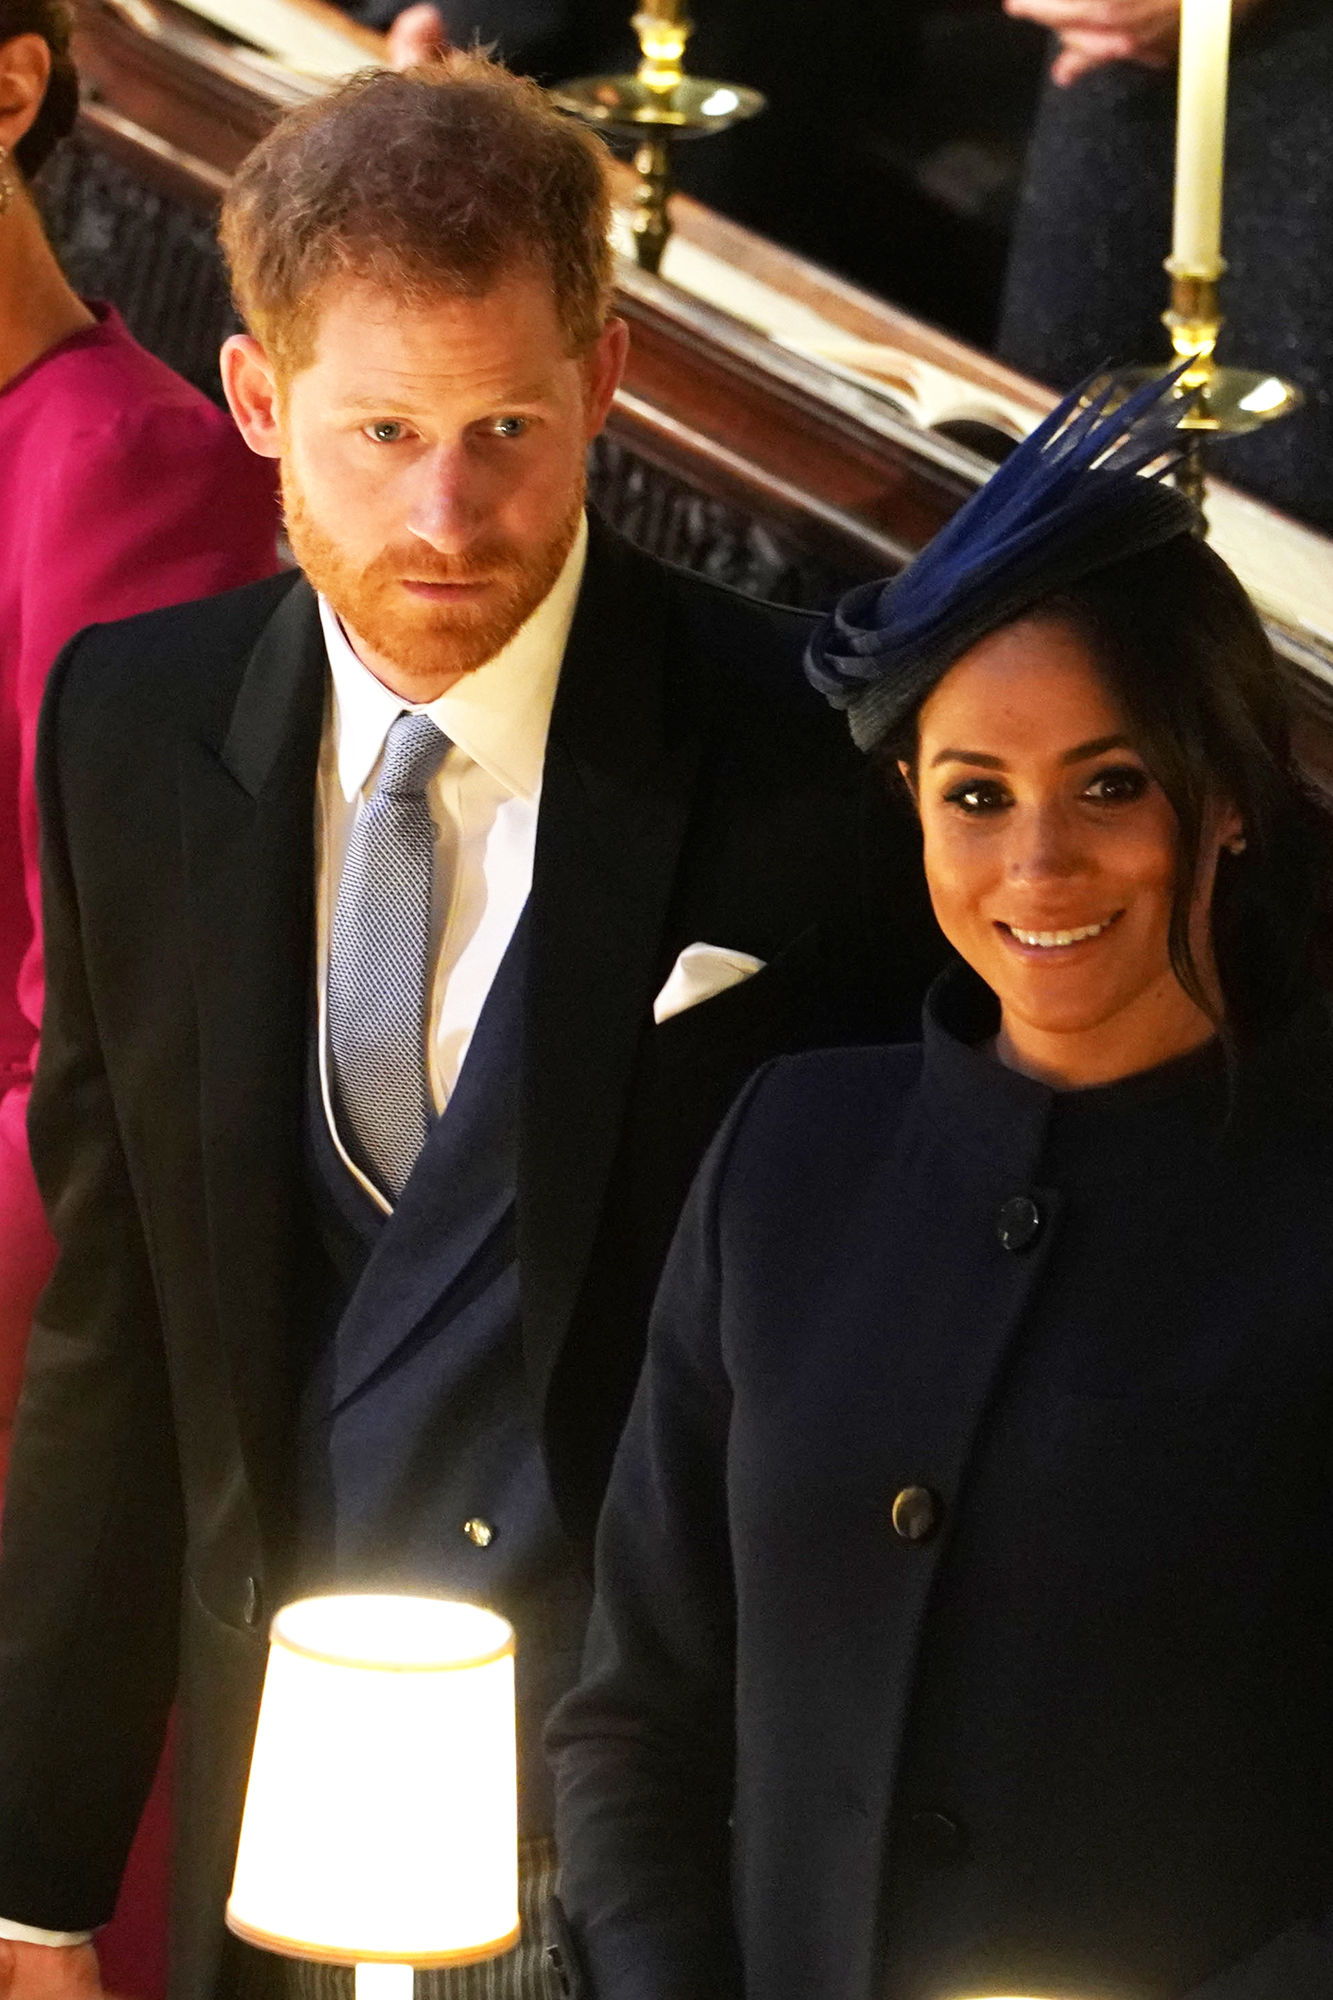 Will Meghan Markle and Prince Harry's Baby Be a U.S. Citizen?